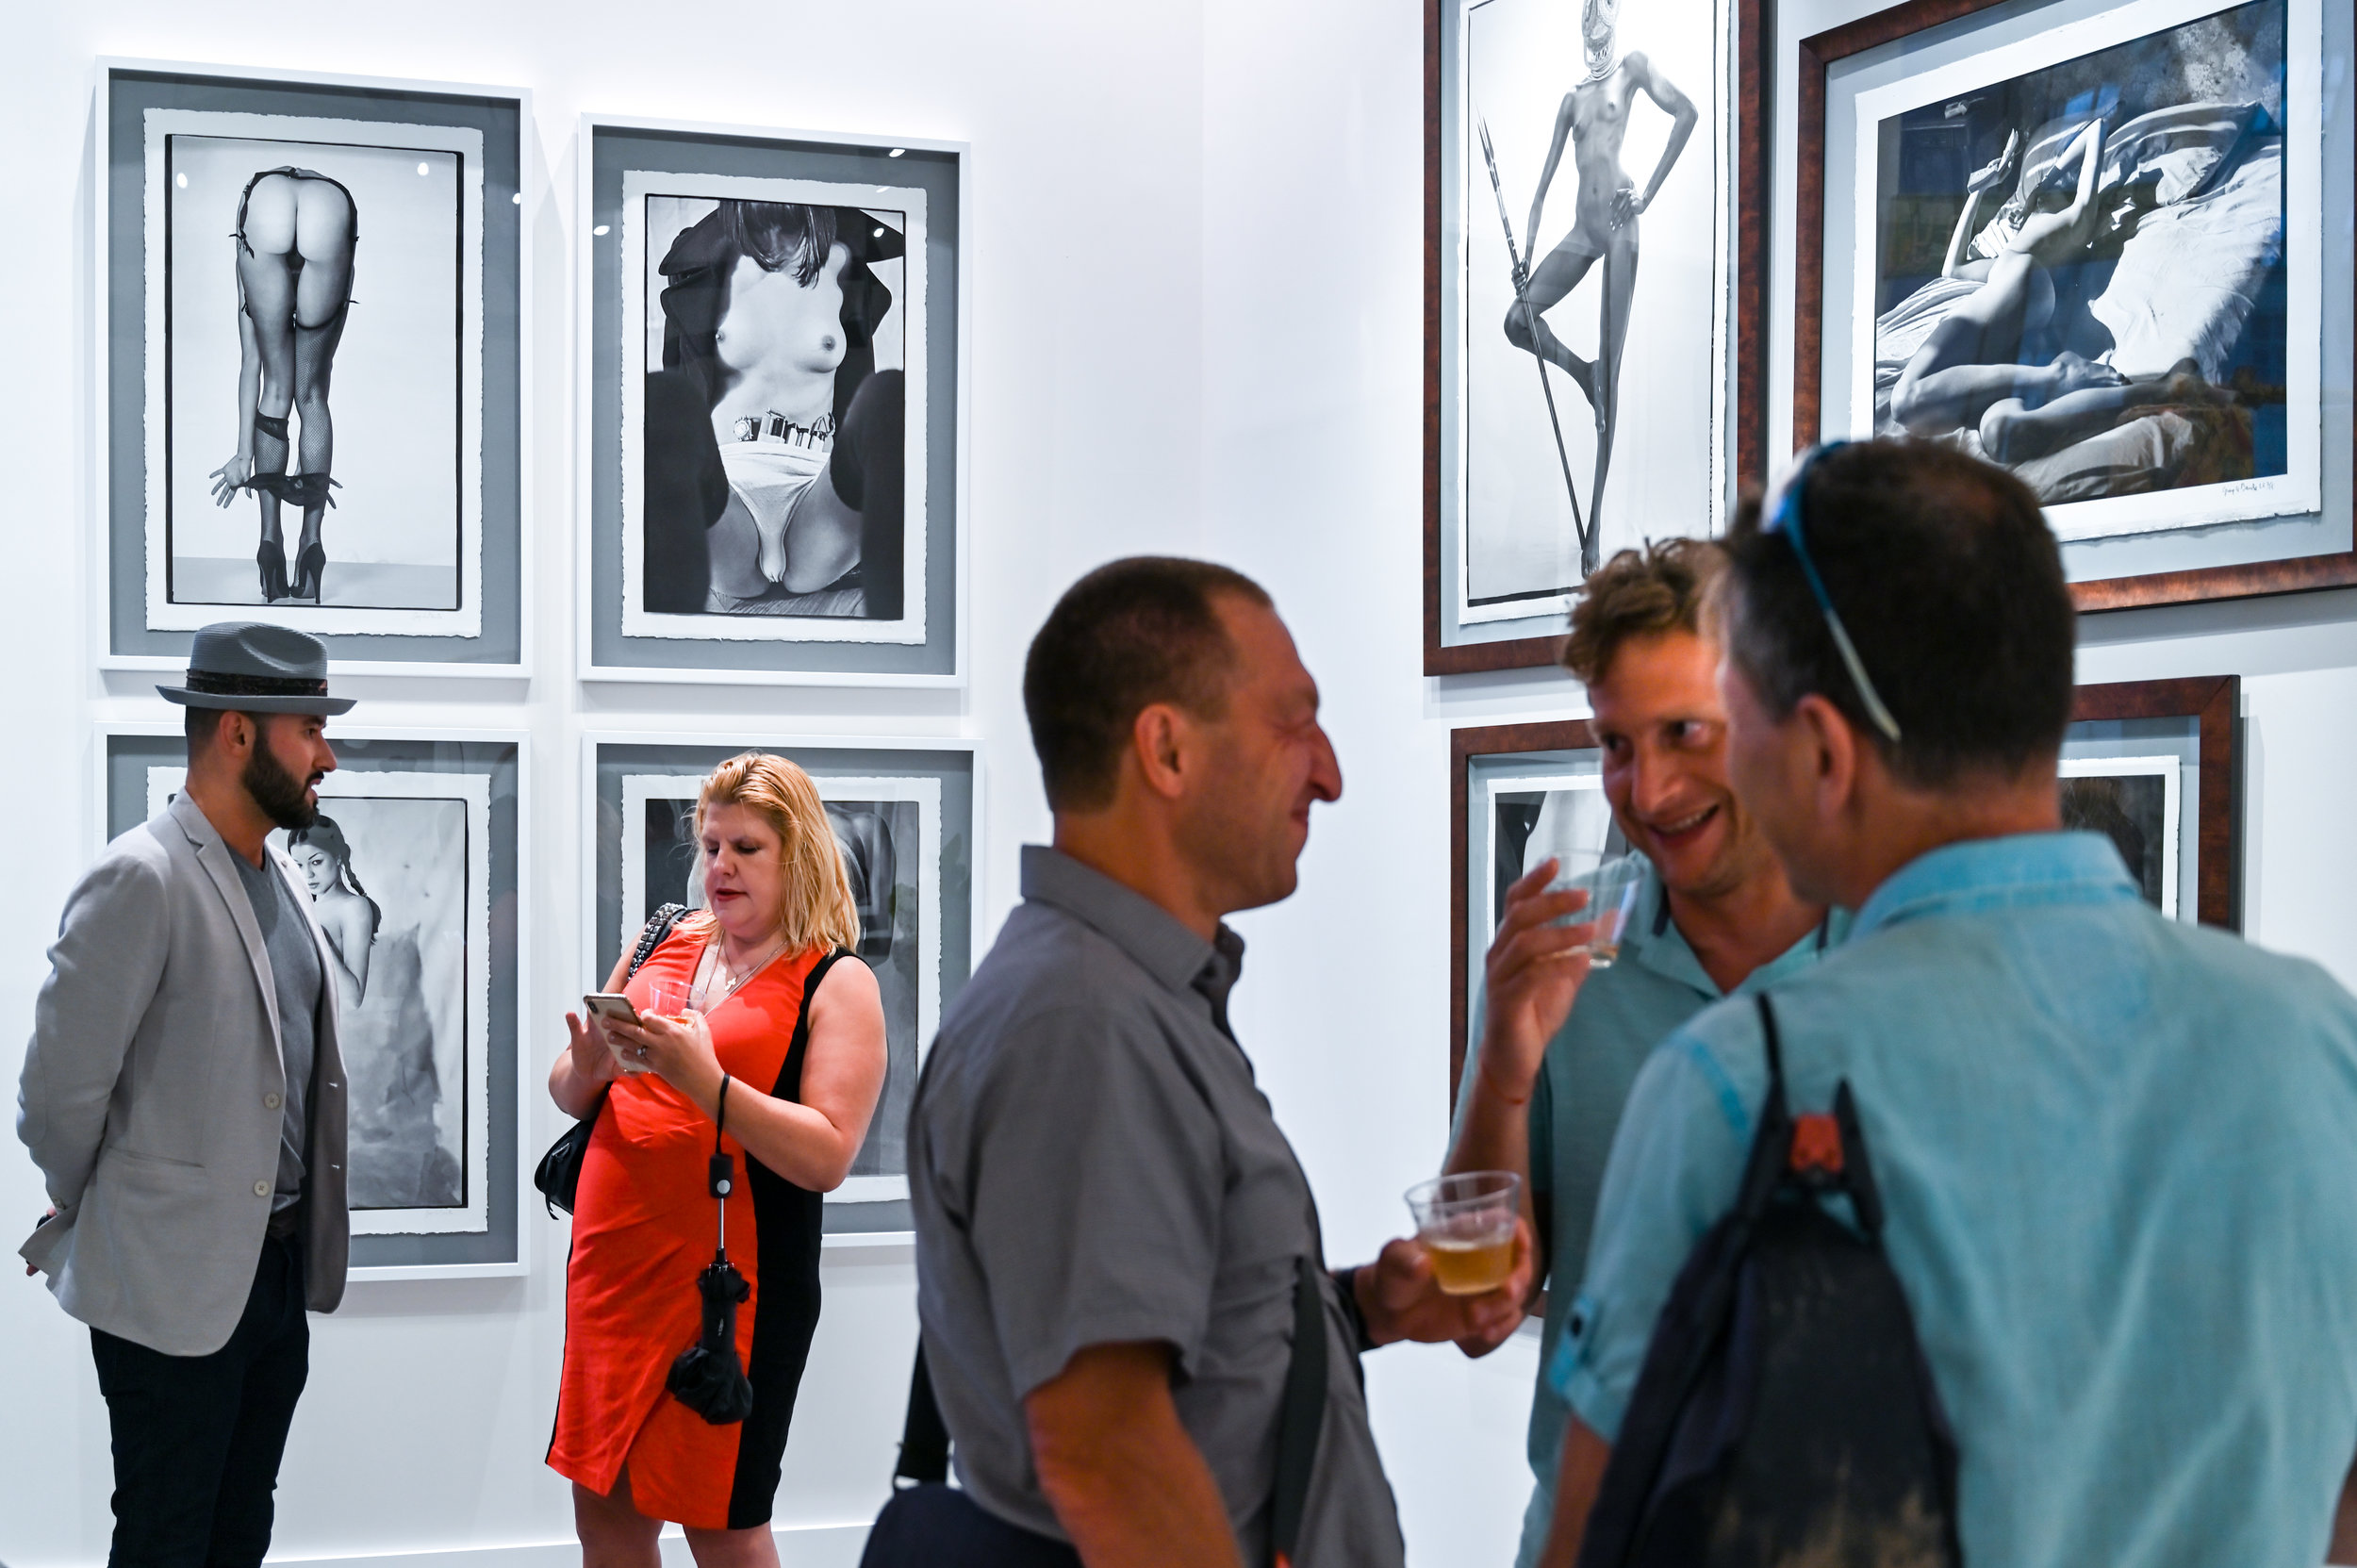 Dmitry Prut, Founder and President of Avant Gallery, with visitors. © Federica Belli